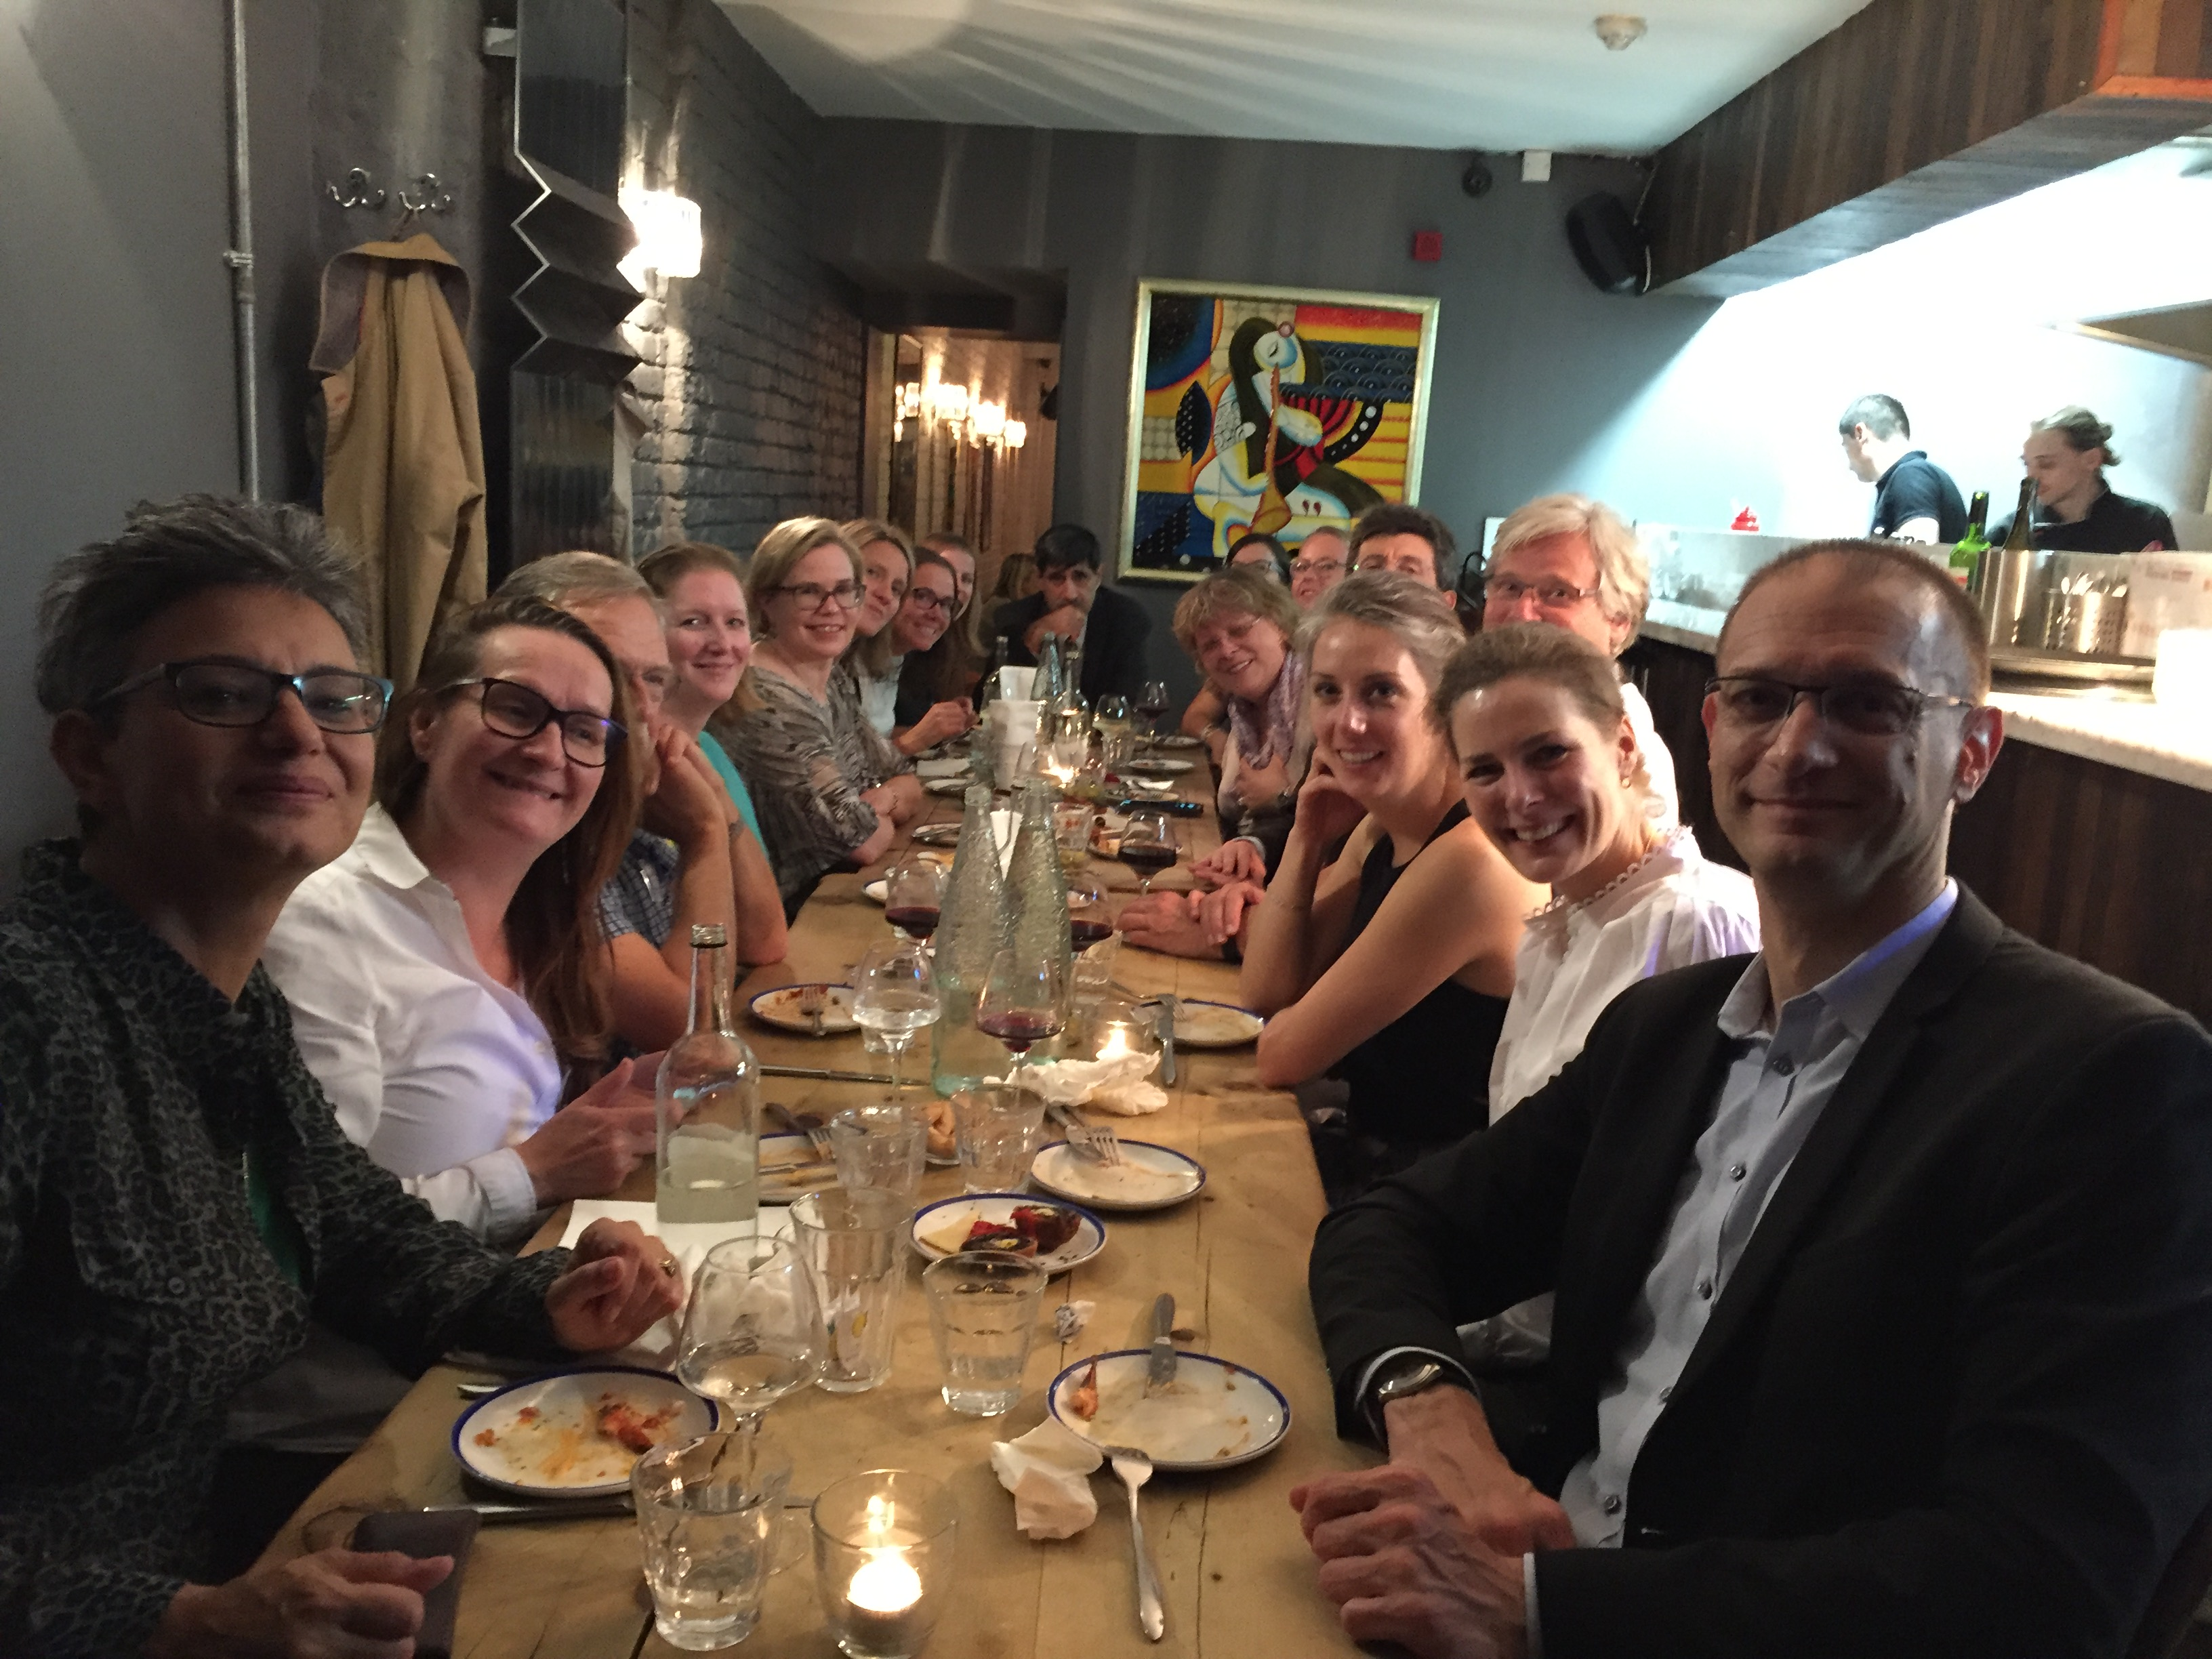 Review of the Pediatric and Primary Lymphedema WG face-to-face meeting in London